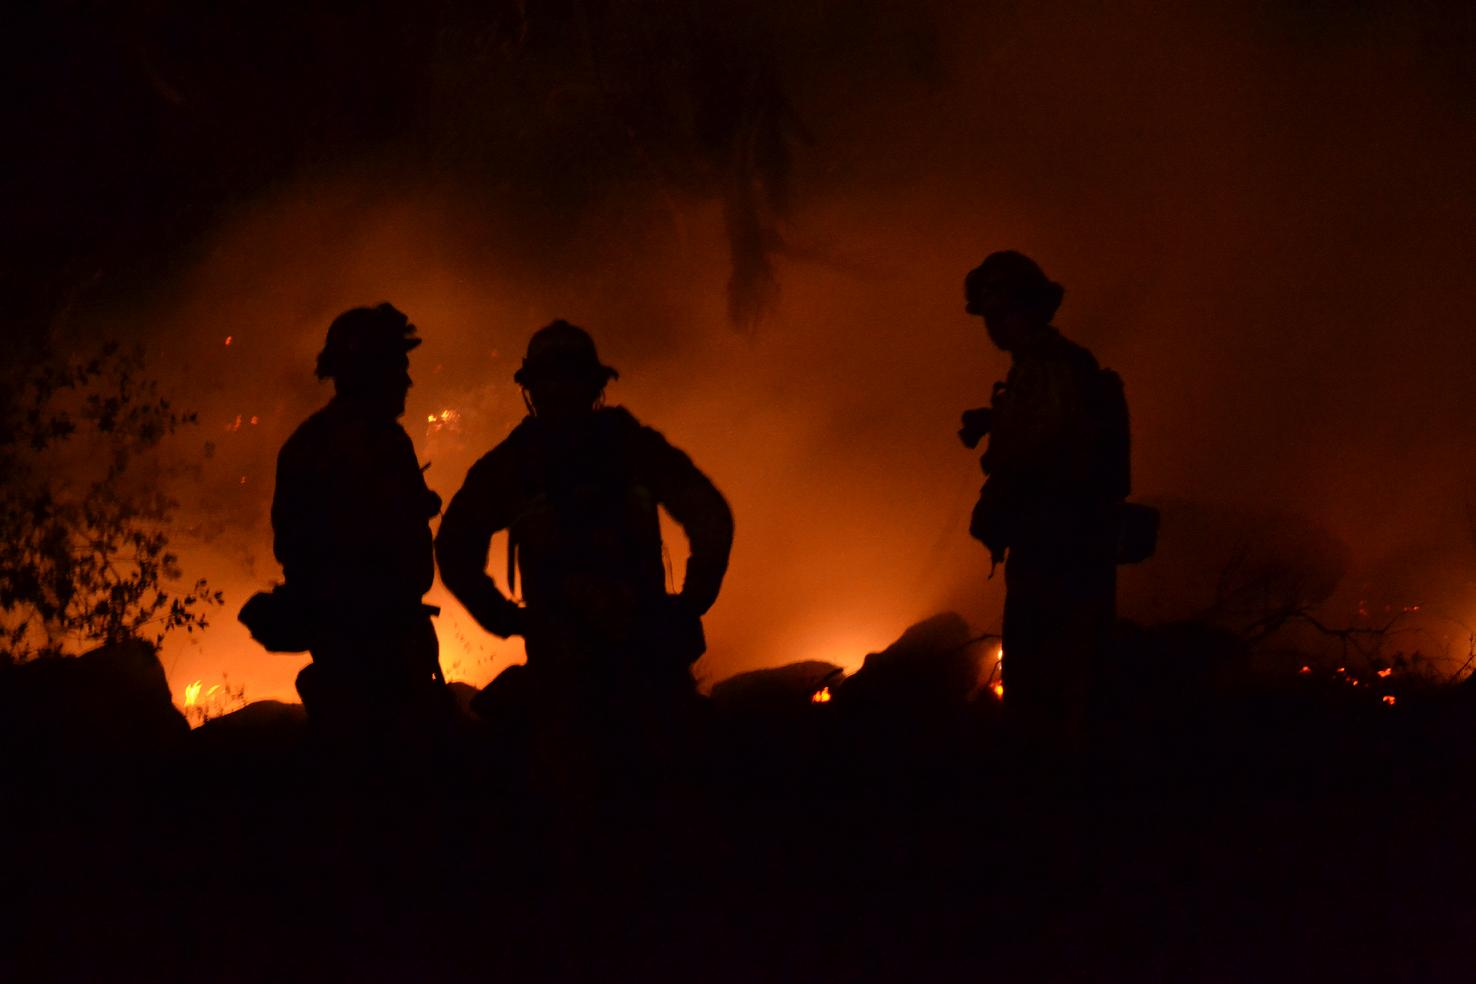 Three firefighters sillouette Revis Circle - photo by Gina Clugston